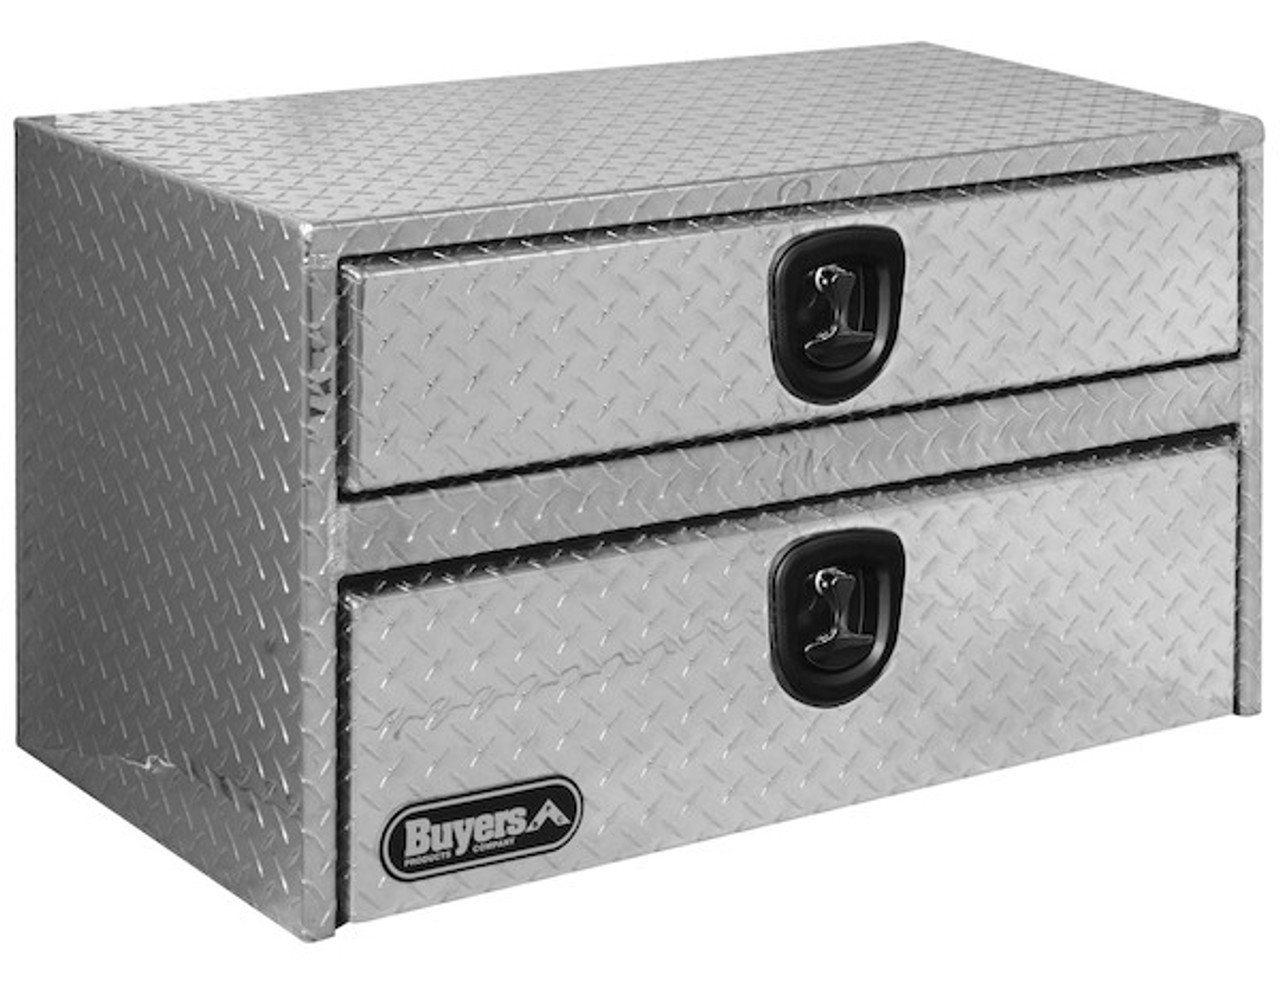 "1712210 BUYERS DIAMOND TREAD ALUMINUM UNDERBODY TRUCK BOX WITH DRAWER TOOLBOX 20""HX18""DX48""W"